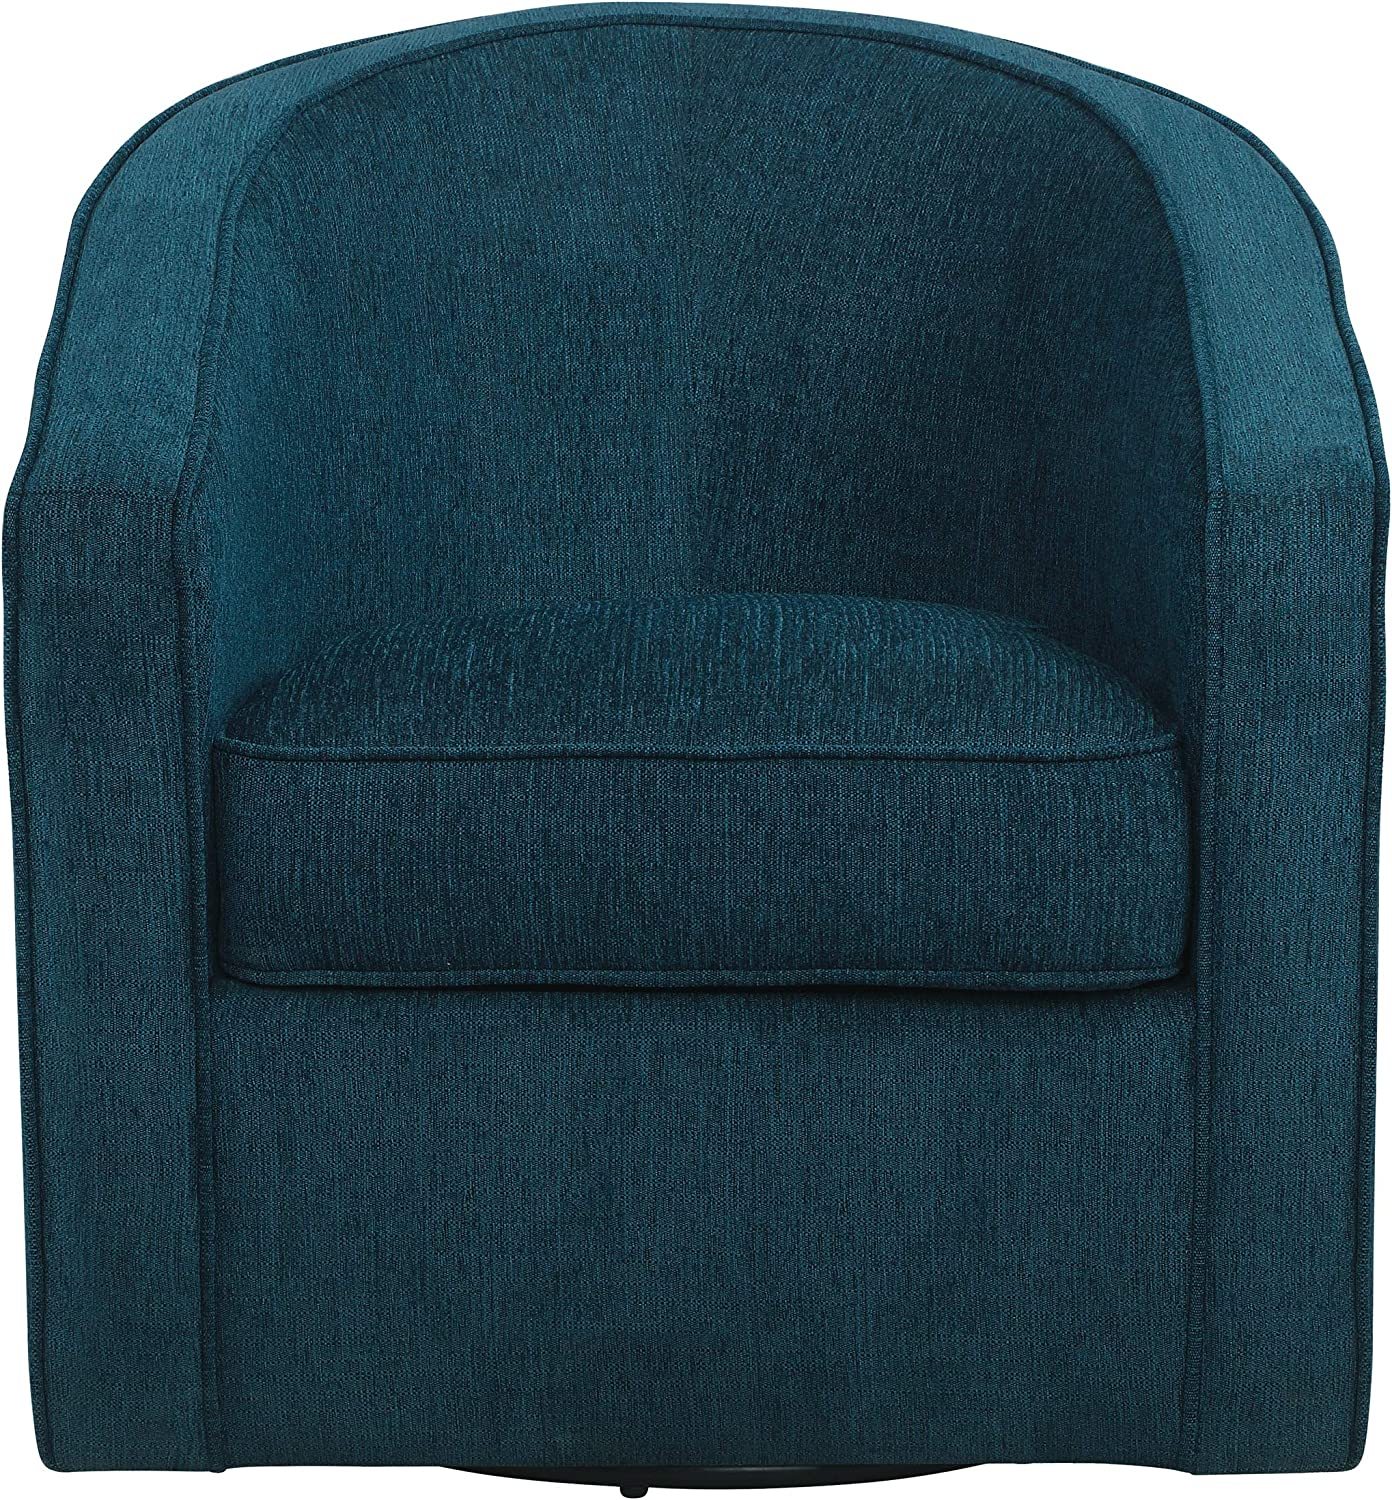 Osp Home Furnishings Danica Swivel Chair With Thick Cushions Azure Blue Fabric Furniture Decor